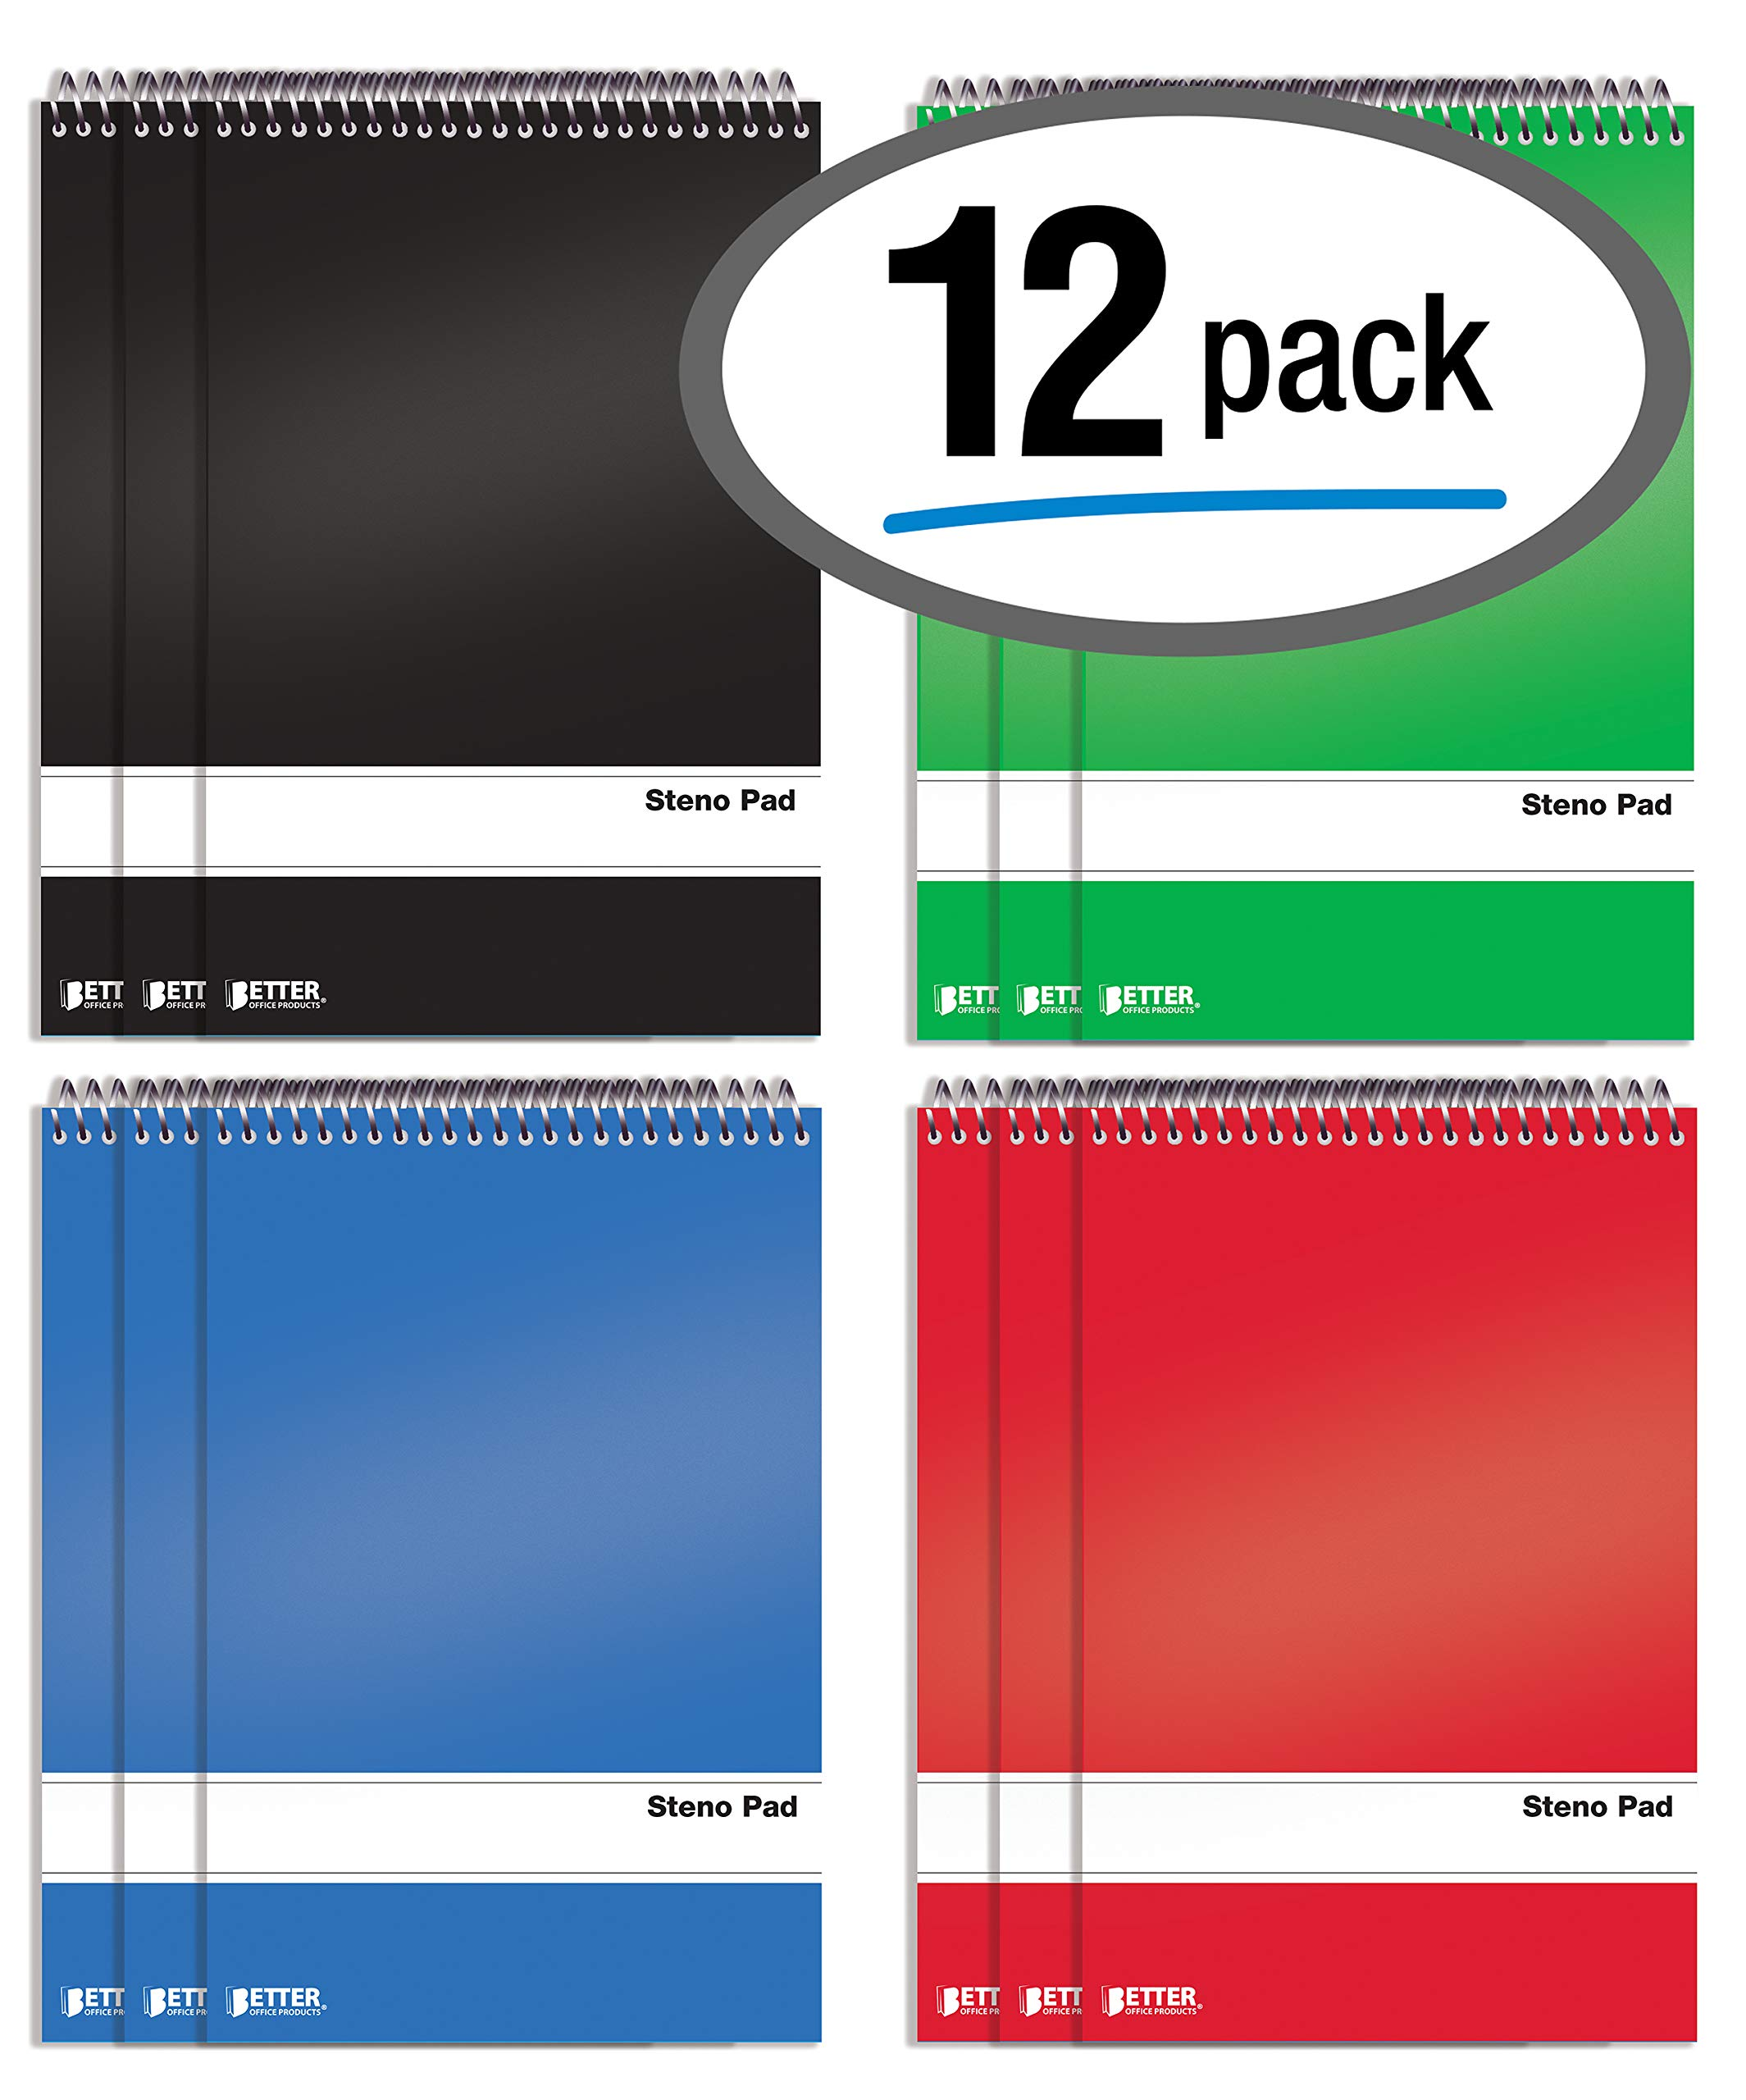 Spiral Steno Pads, 12 Pack, 6 x 9 inches, 80 Sheets, White Paper, Gregg Rule, by Better Office Products, Assorted Solid Colors (Red, Black, Blue, Green), 12 Pack by Better Office Products